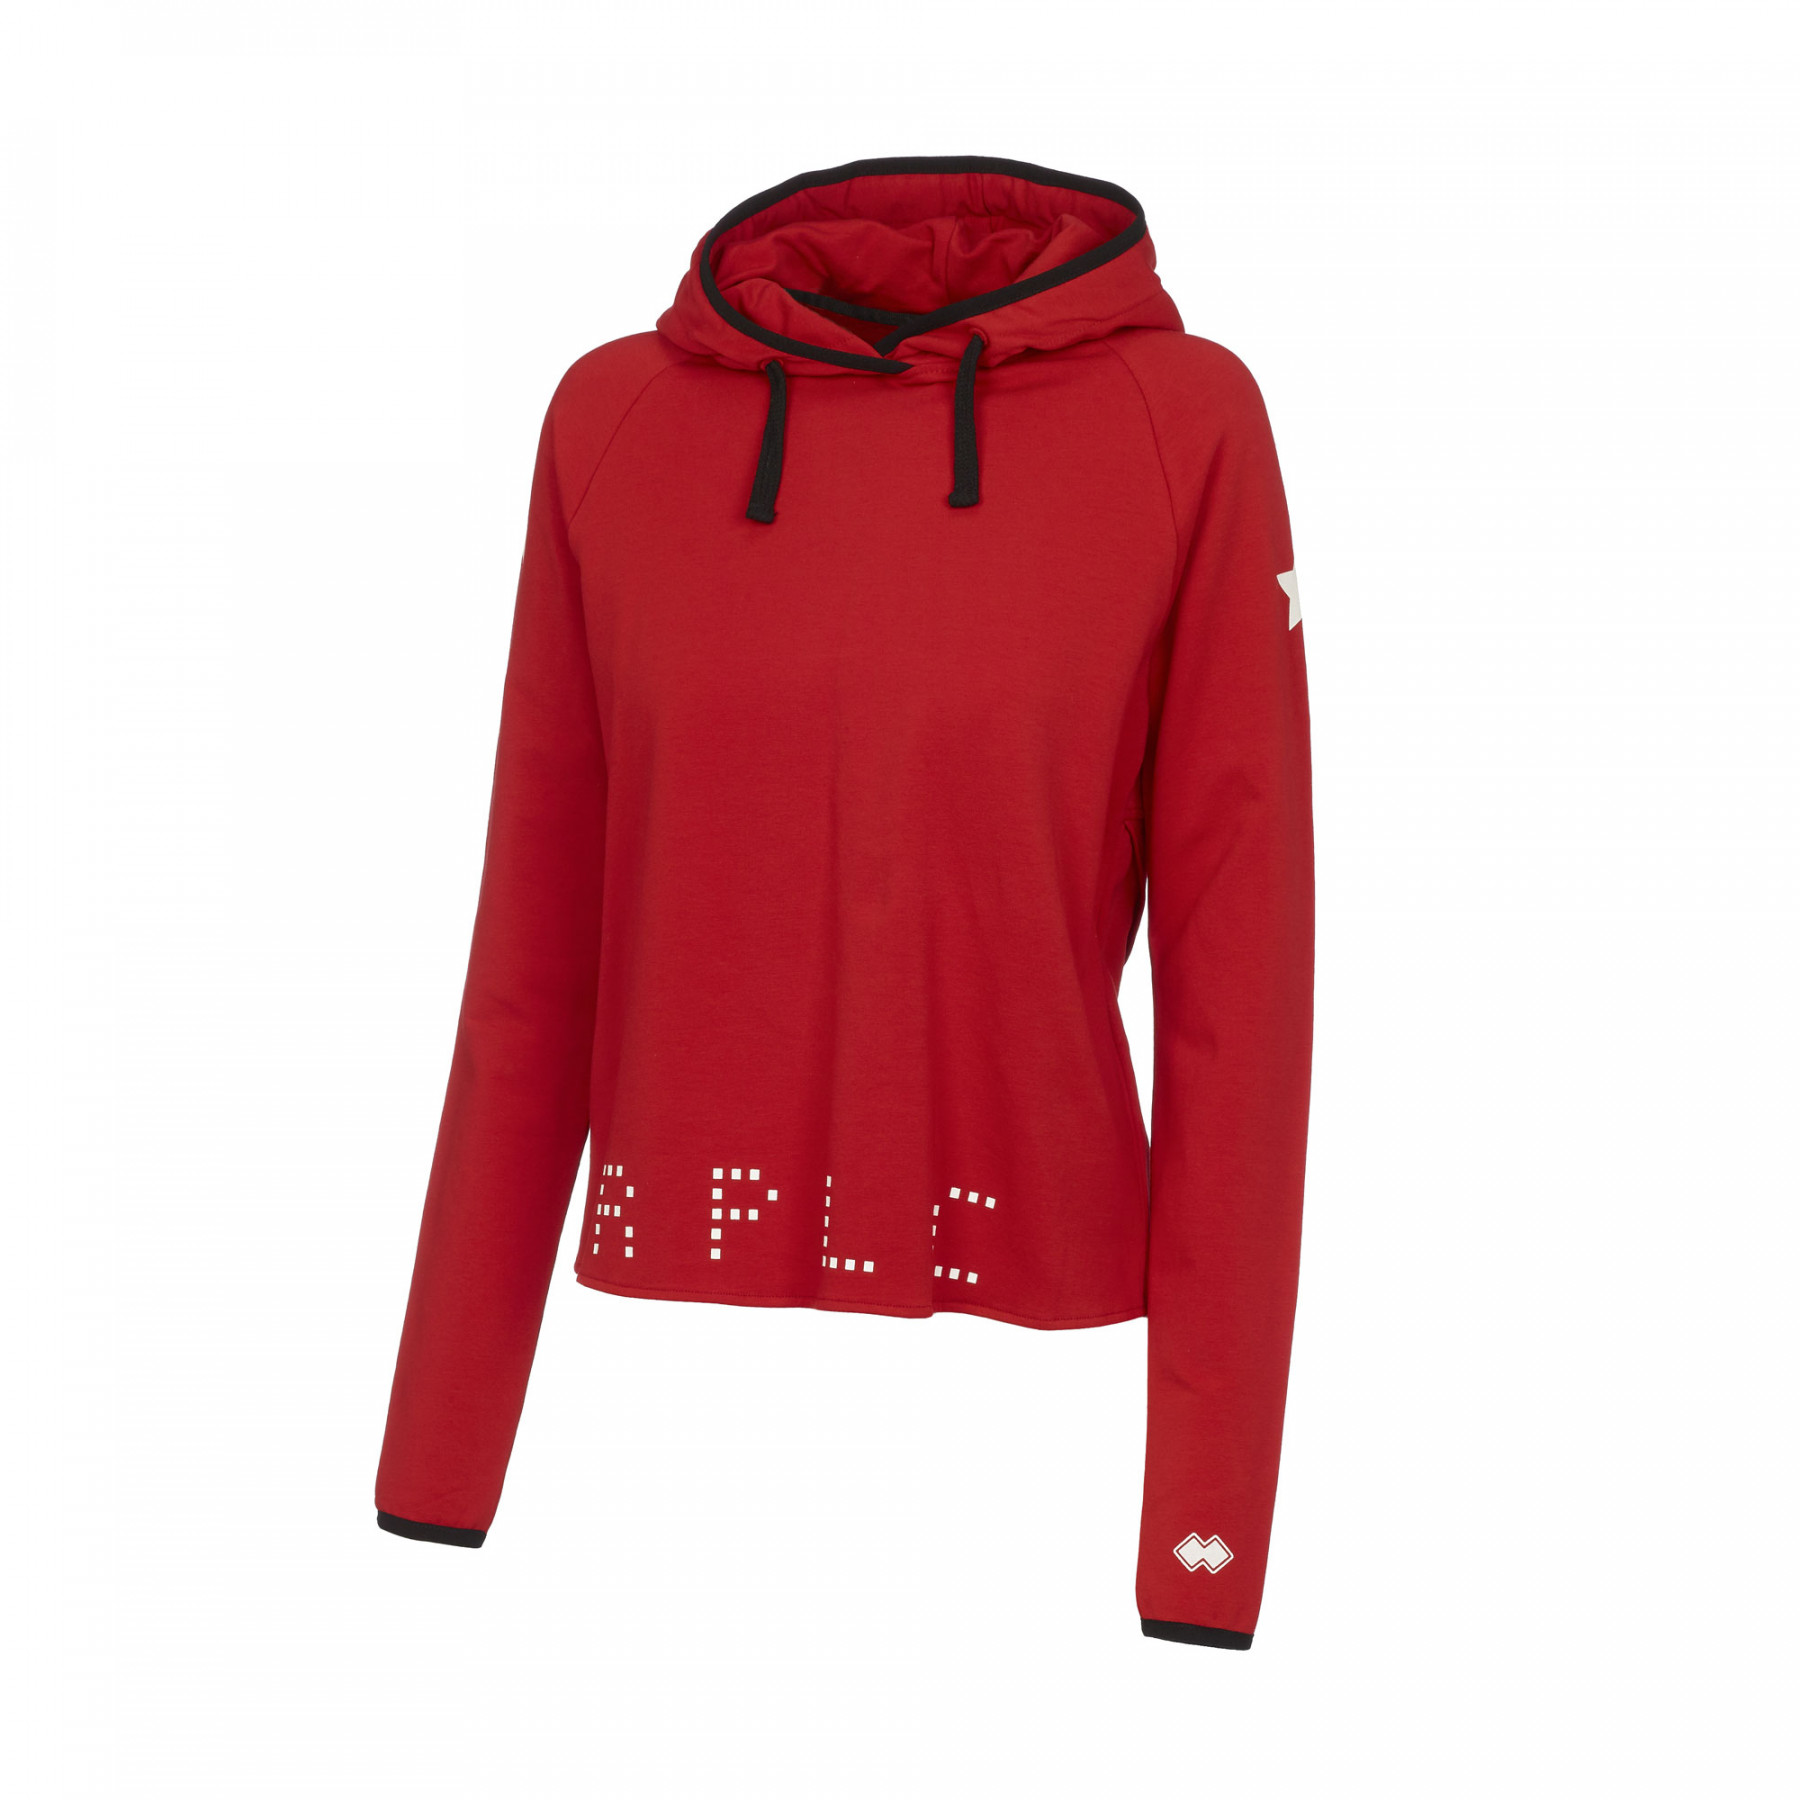 For Hoodie with cross on back Hot porn pictures seems